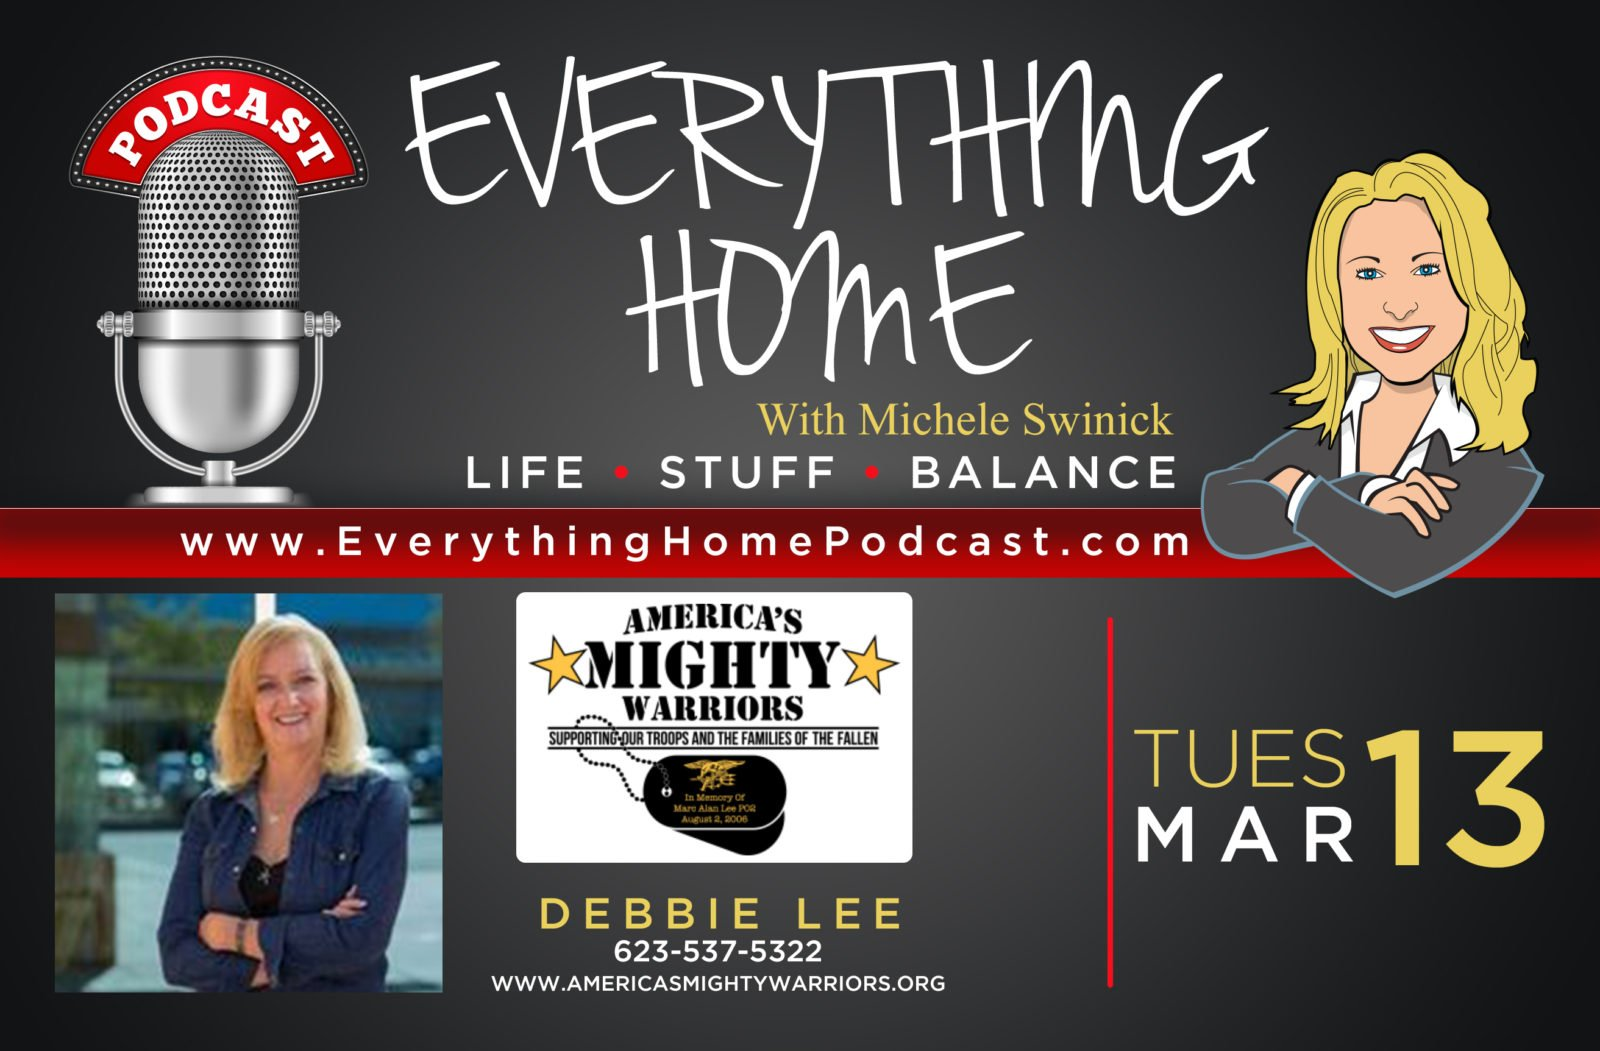 PODCAST AD - DEBBIE LEE - MARCH 13